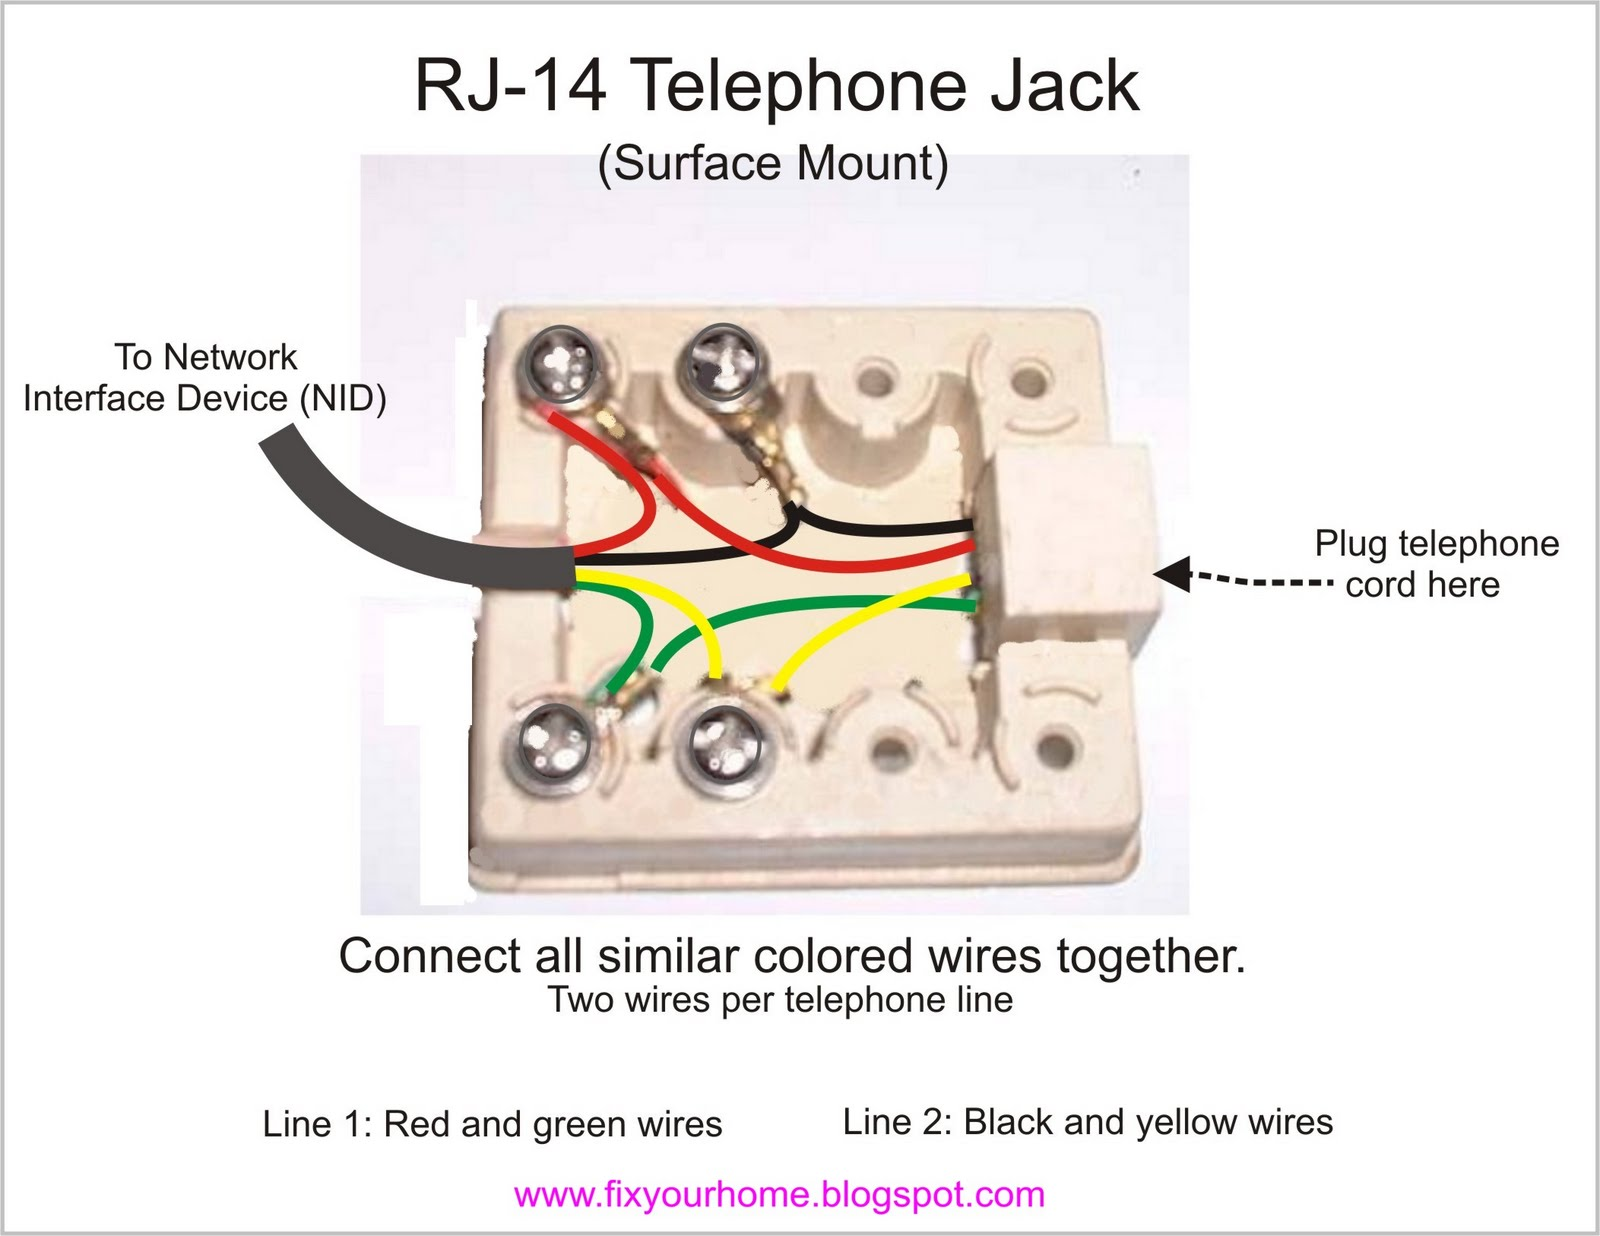 Diagram Basic Telephone Jack Wiring Diagram Full Version Hd Quality Wiring Diagram Atqr10fuse27 Lineaceramicaparma It